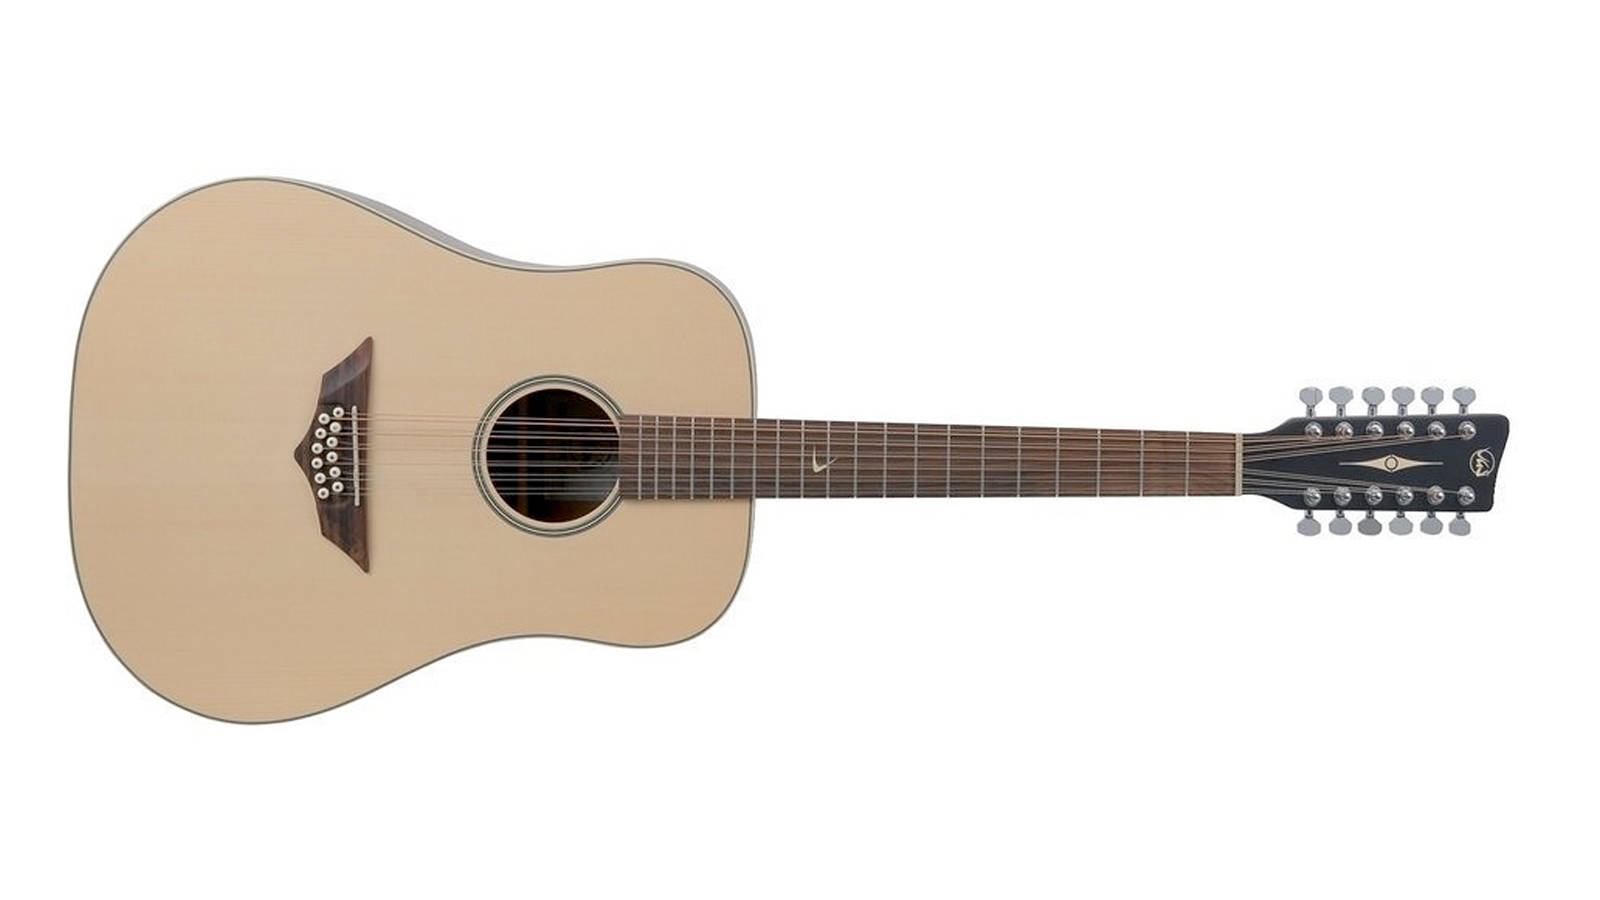 VGS RT-10-12 Westerngitarre 12-String